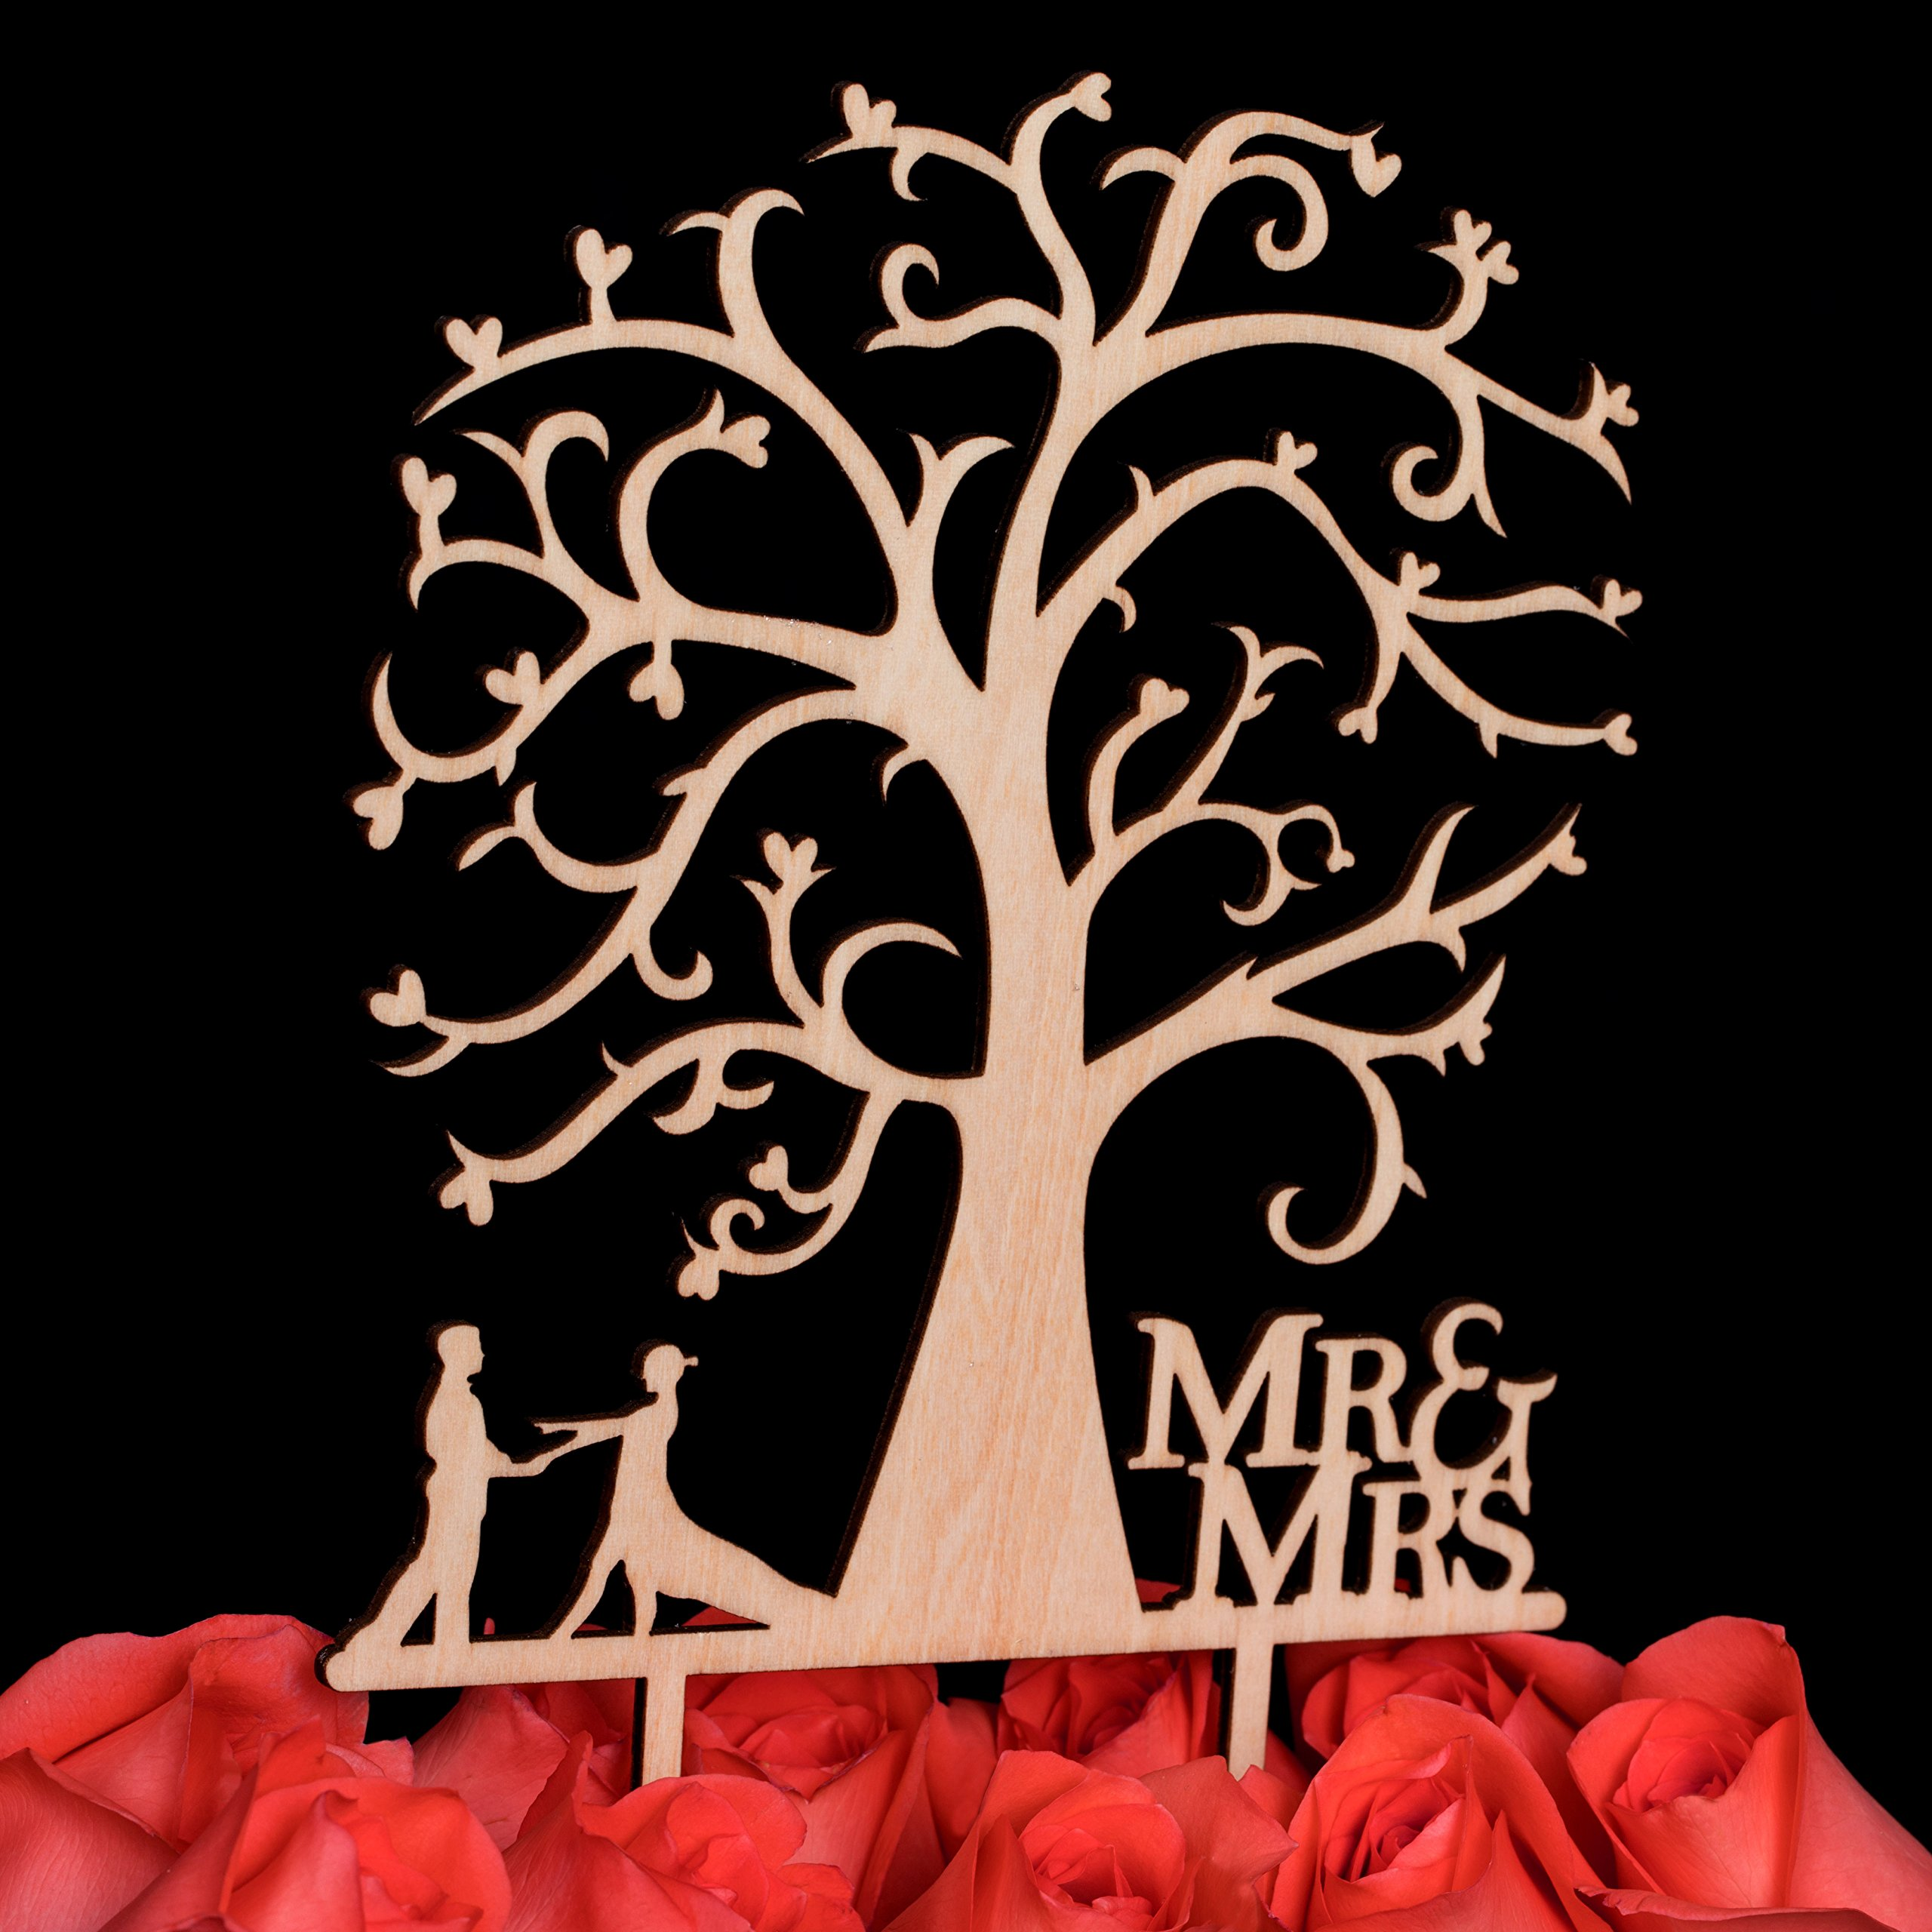 LOVENJOY Gift Box Pack Mr and Mrs Dancing Bride and Groom Tree Silhouette Rustic Wedding Cake Toppers Wood (5-inch) by LOVENJOY (Image #5)